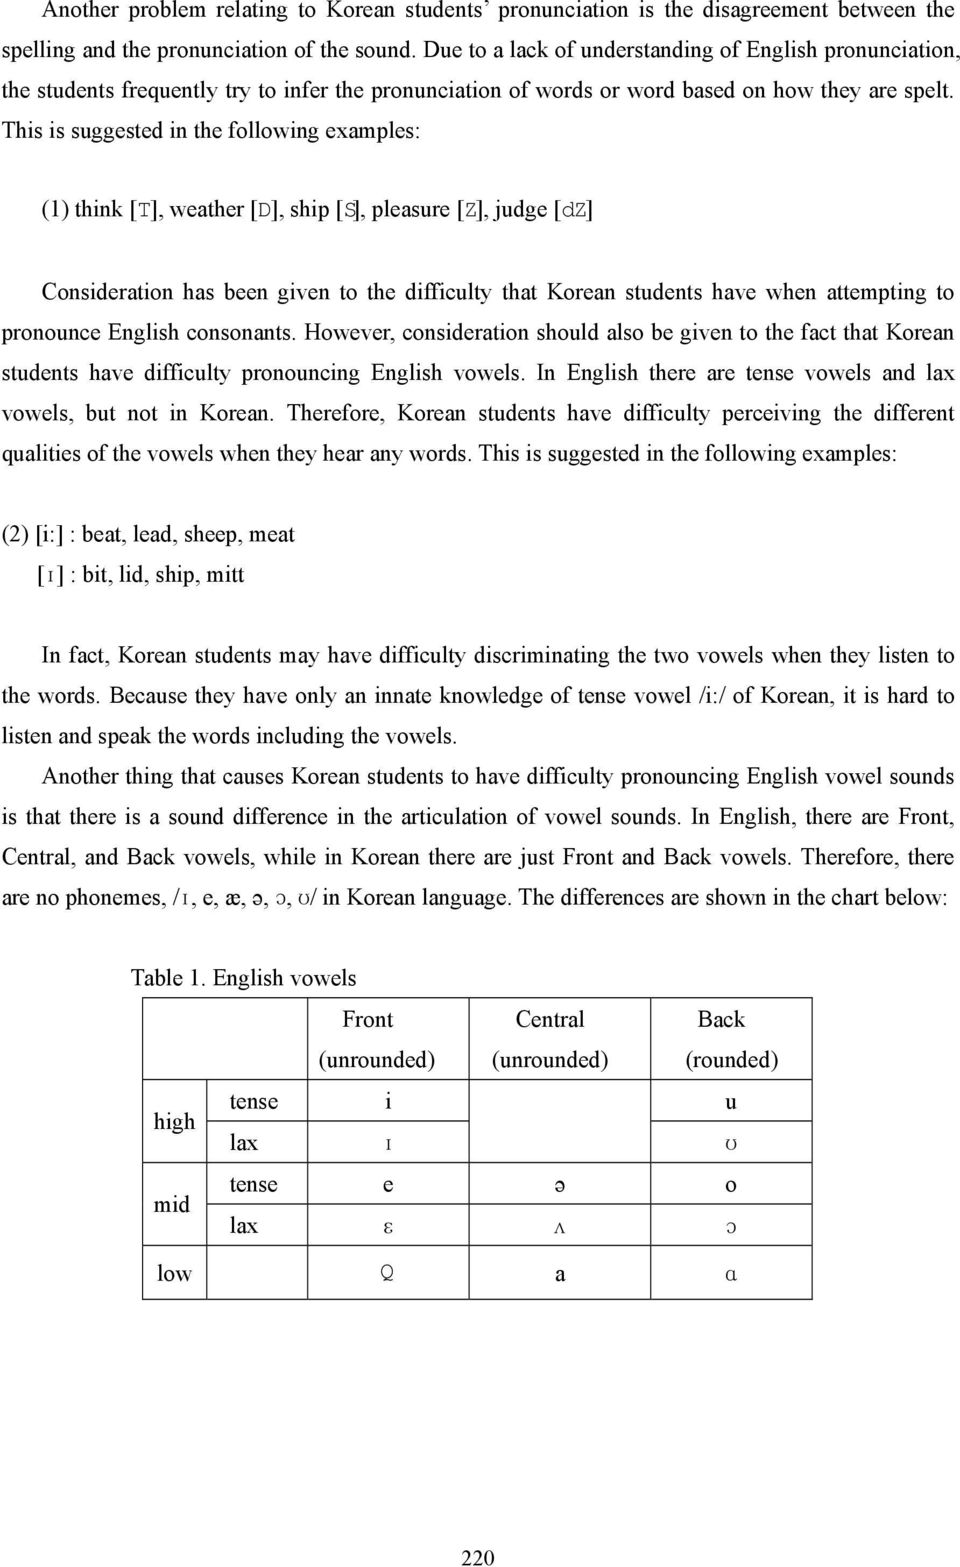 The Phonological Role in English Pronunciation Instruction - PDF